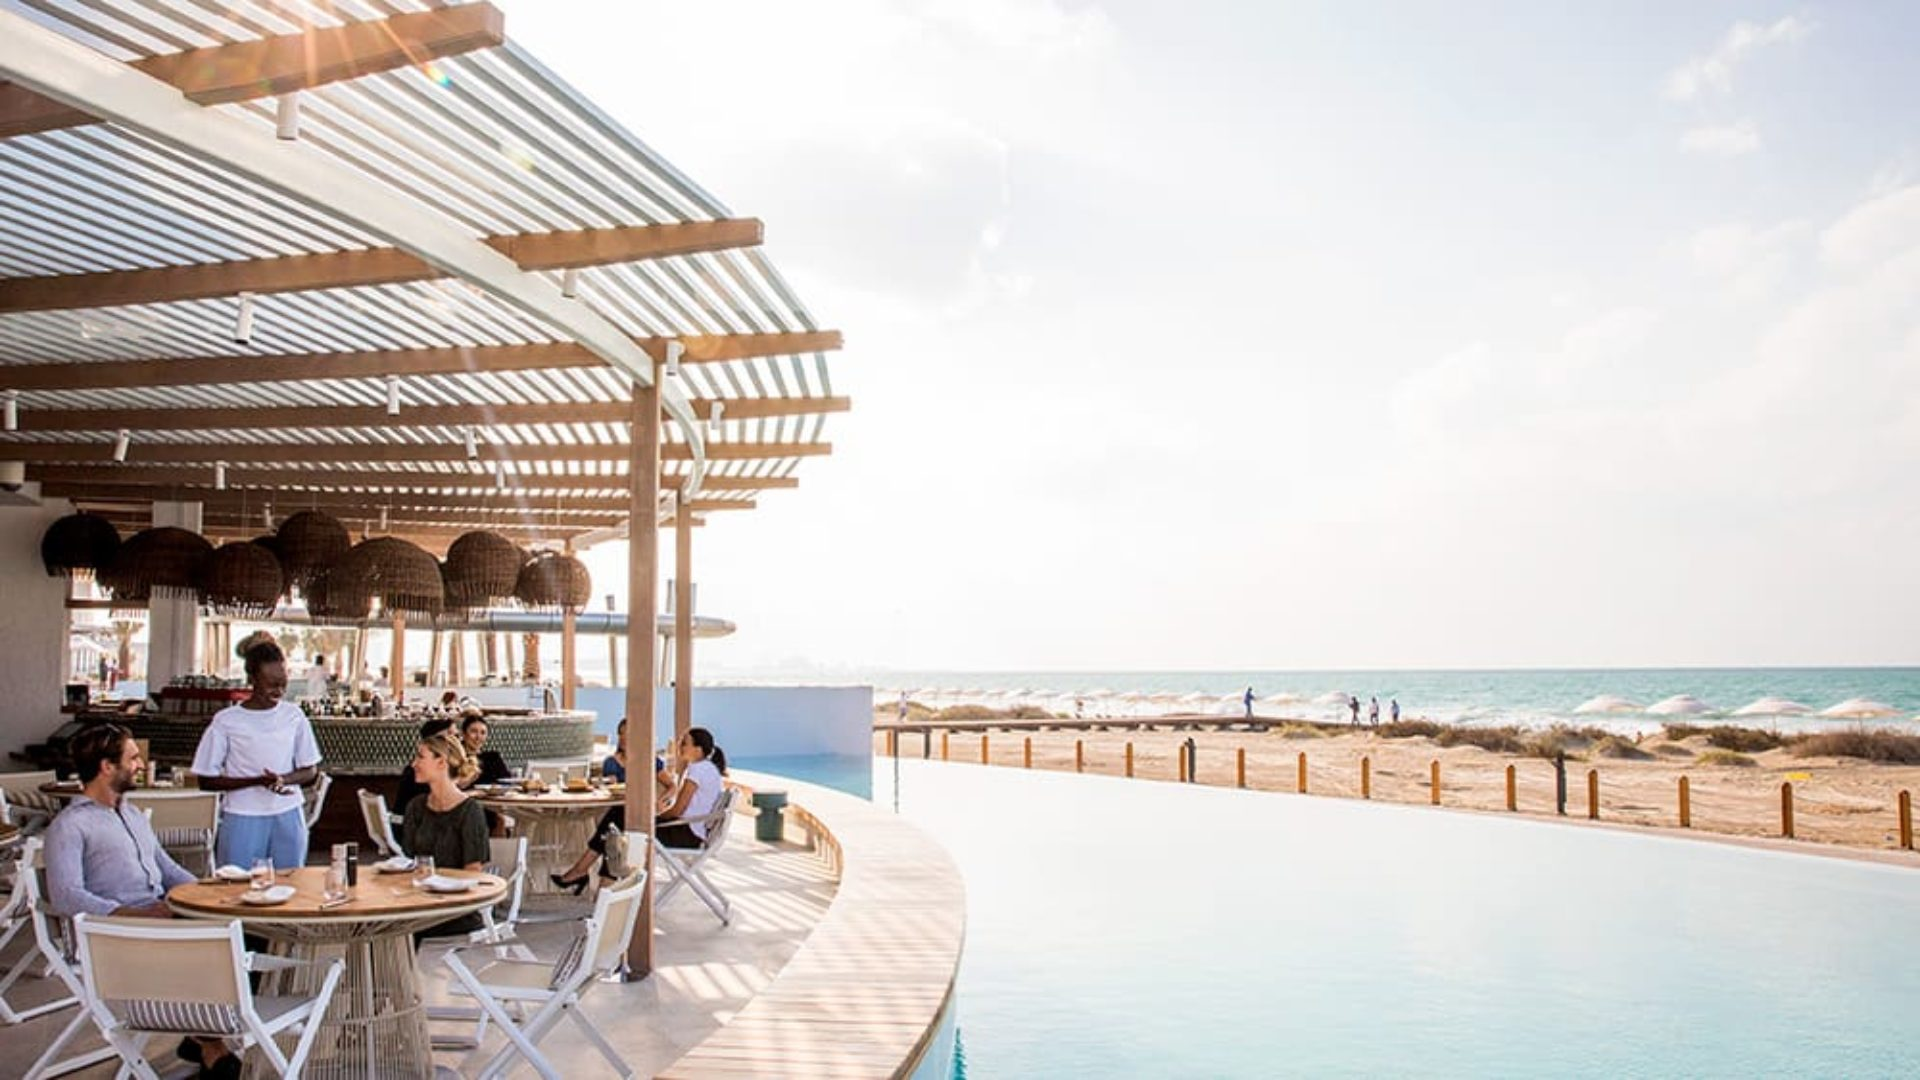 Outdoor dining terrace at Jumeirah at Saadiyat Island